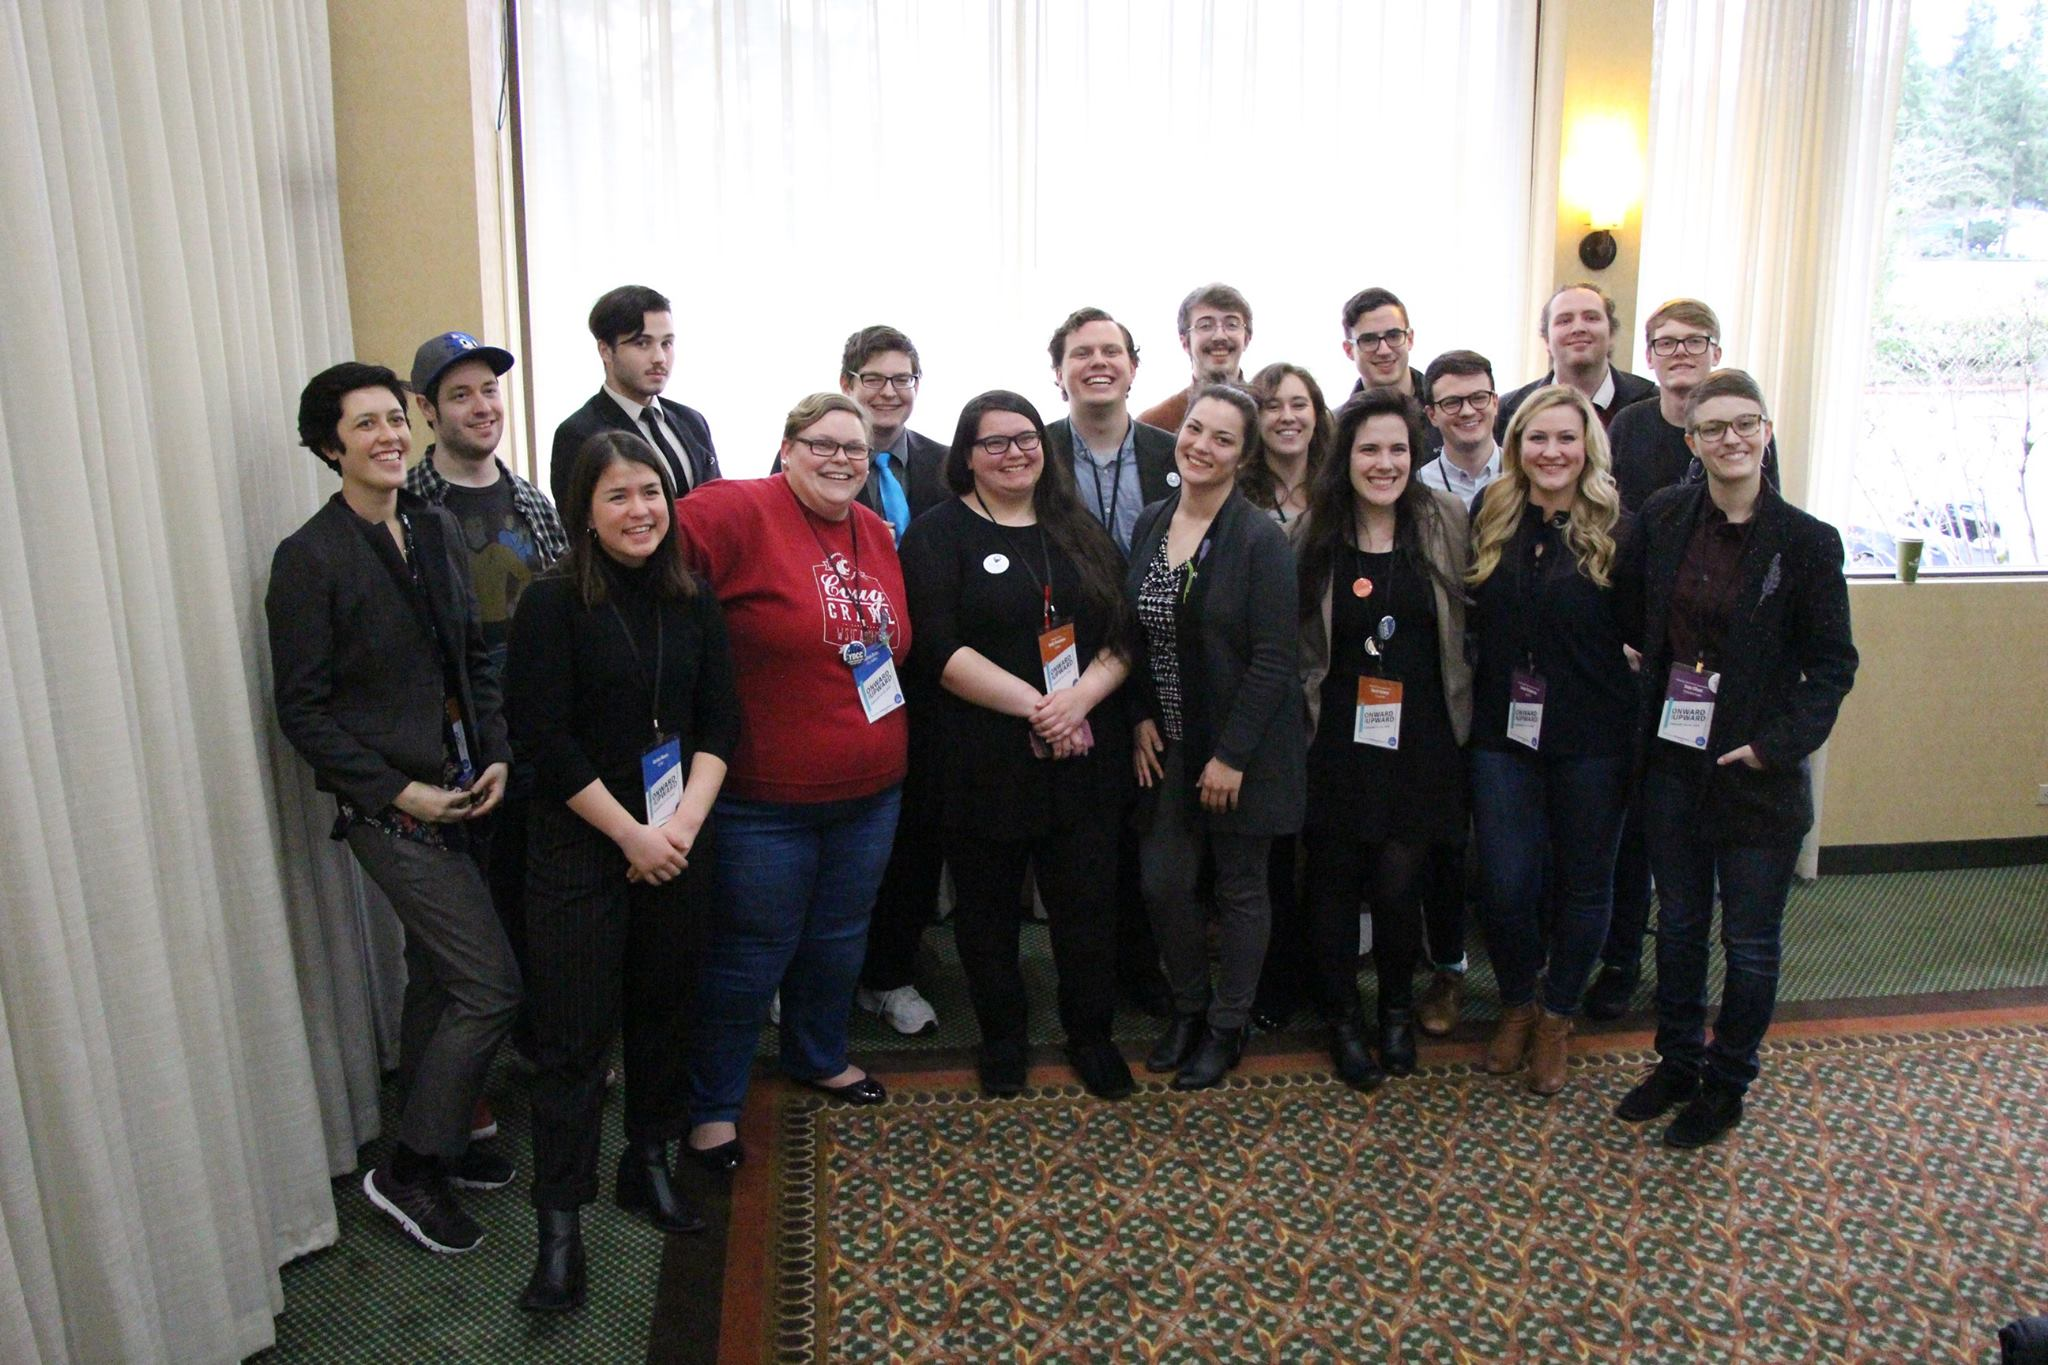 The newly-elected 2018 YDWA Executive Board